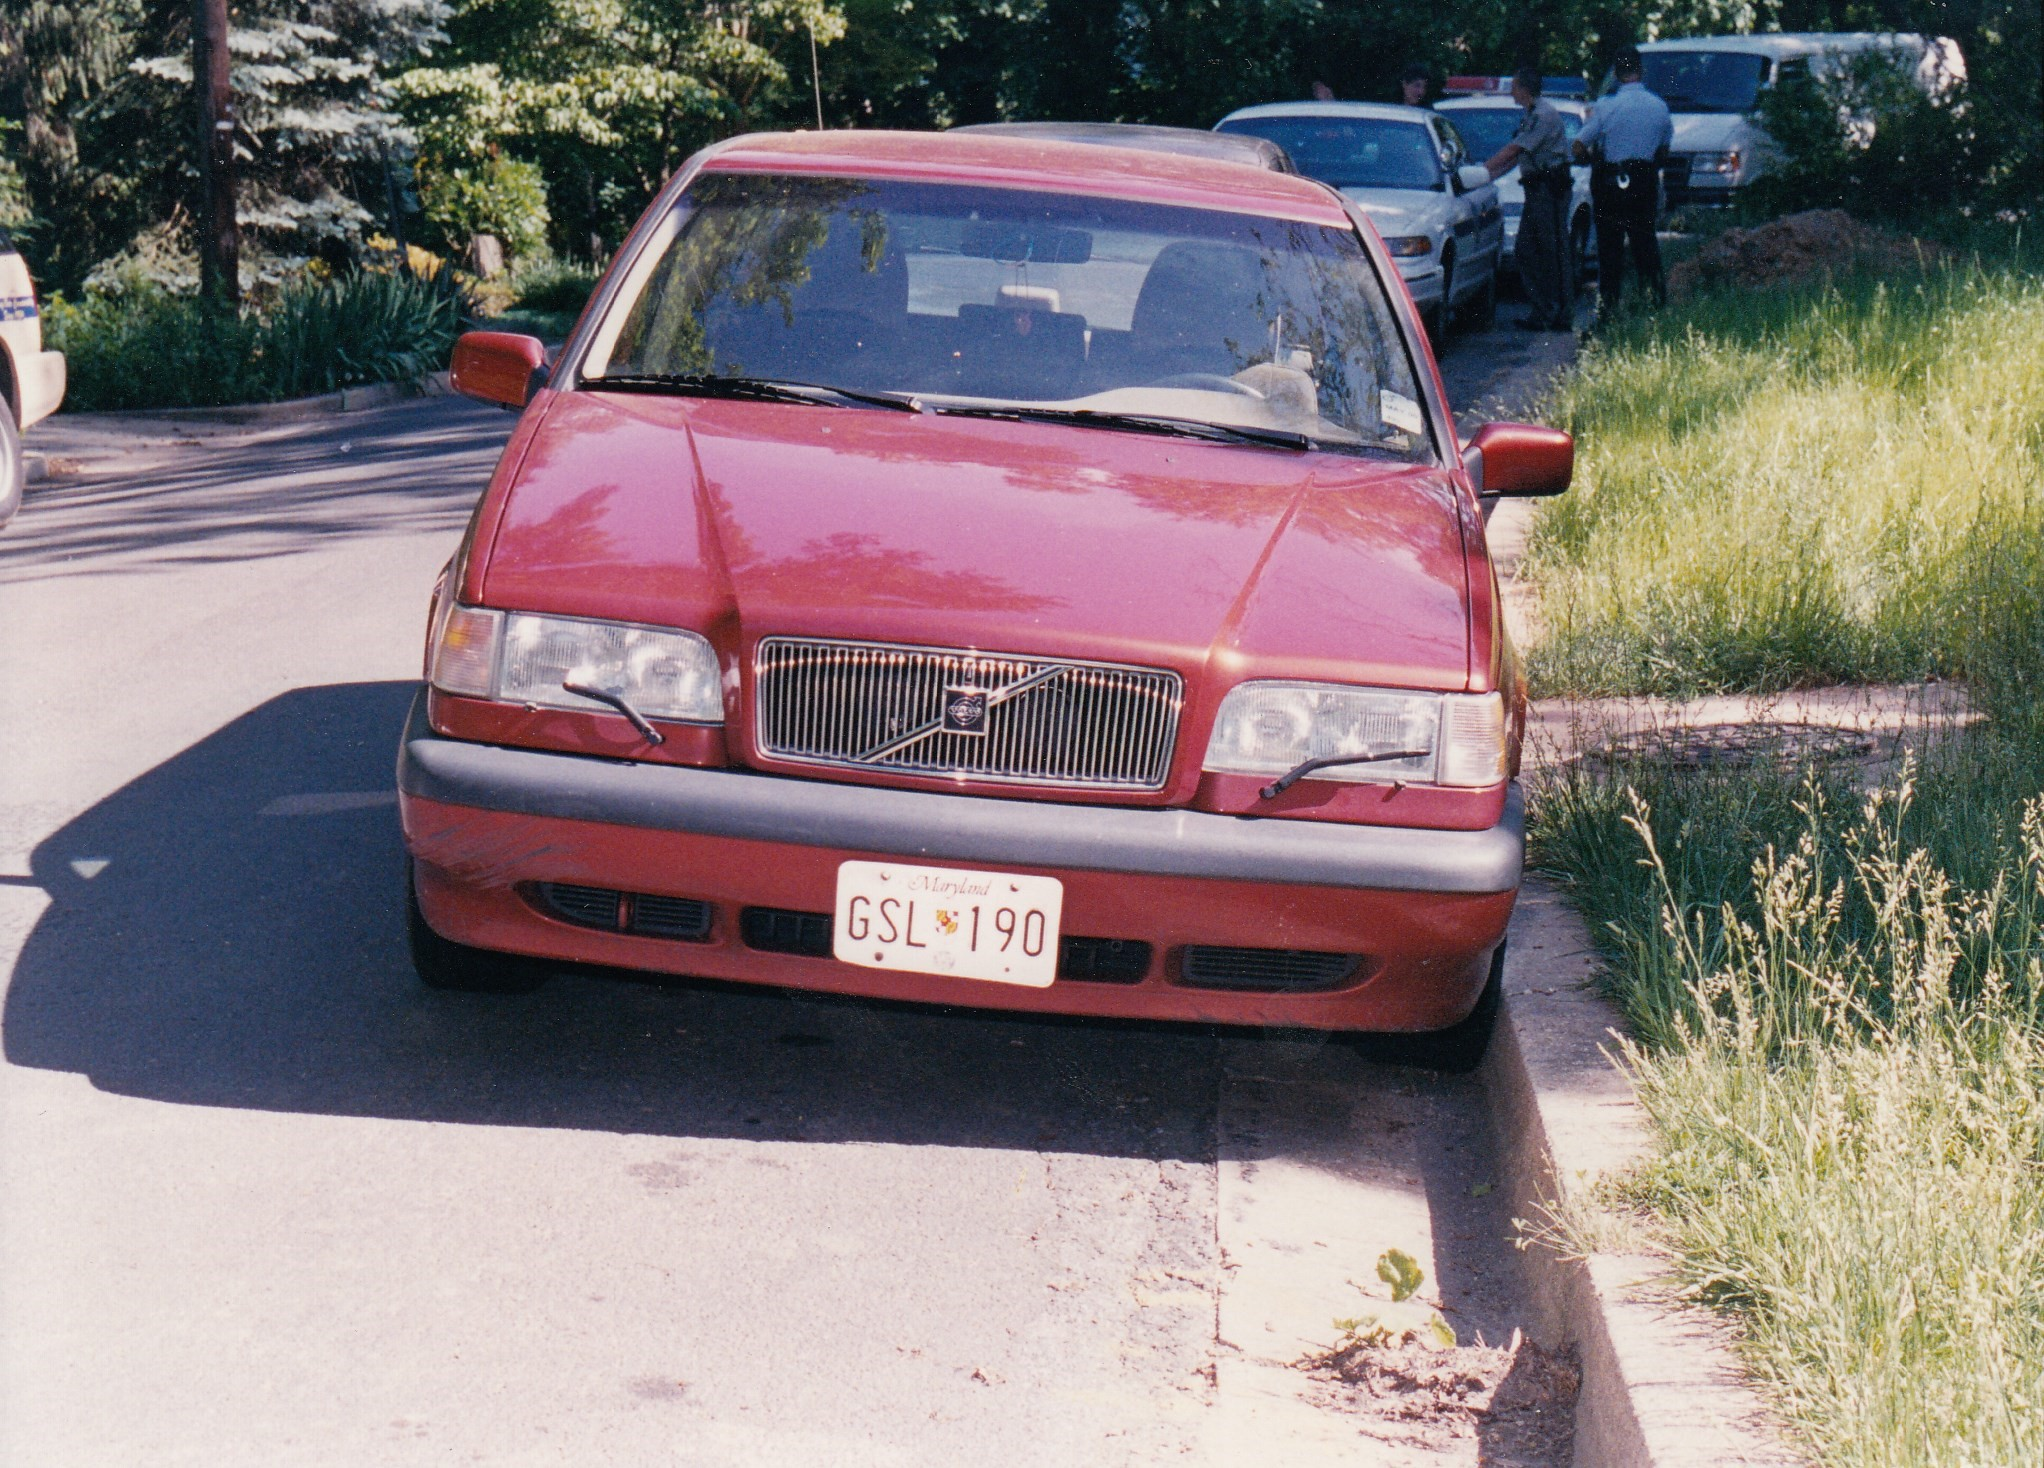 Alison Thresher's vehicle, a red Volvo station wagon, on the day it was recovered by officers - May, 25, 2000.